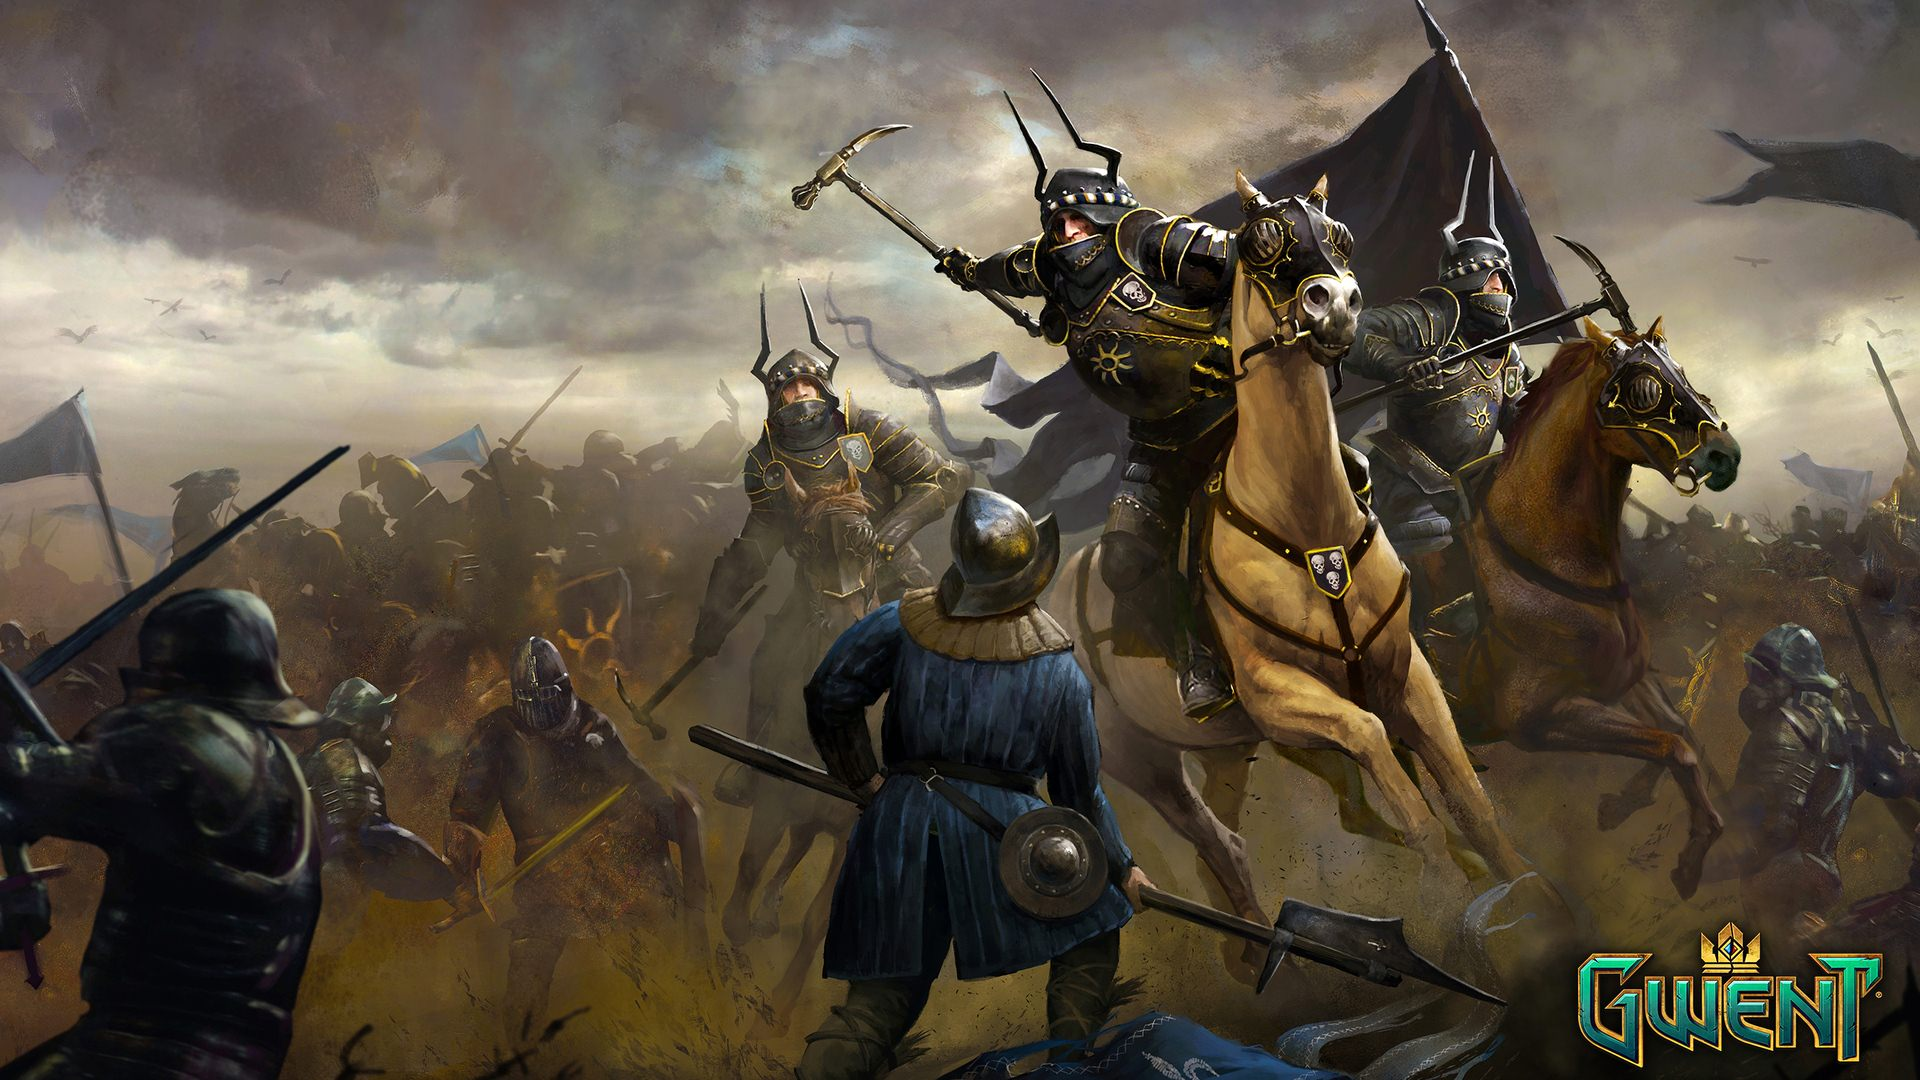 Medieval Battle Wallpaper Posted By Michelle Mercado